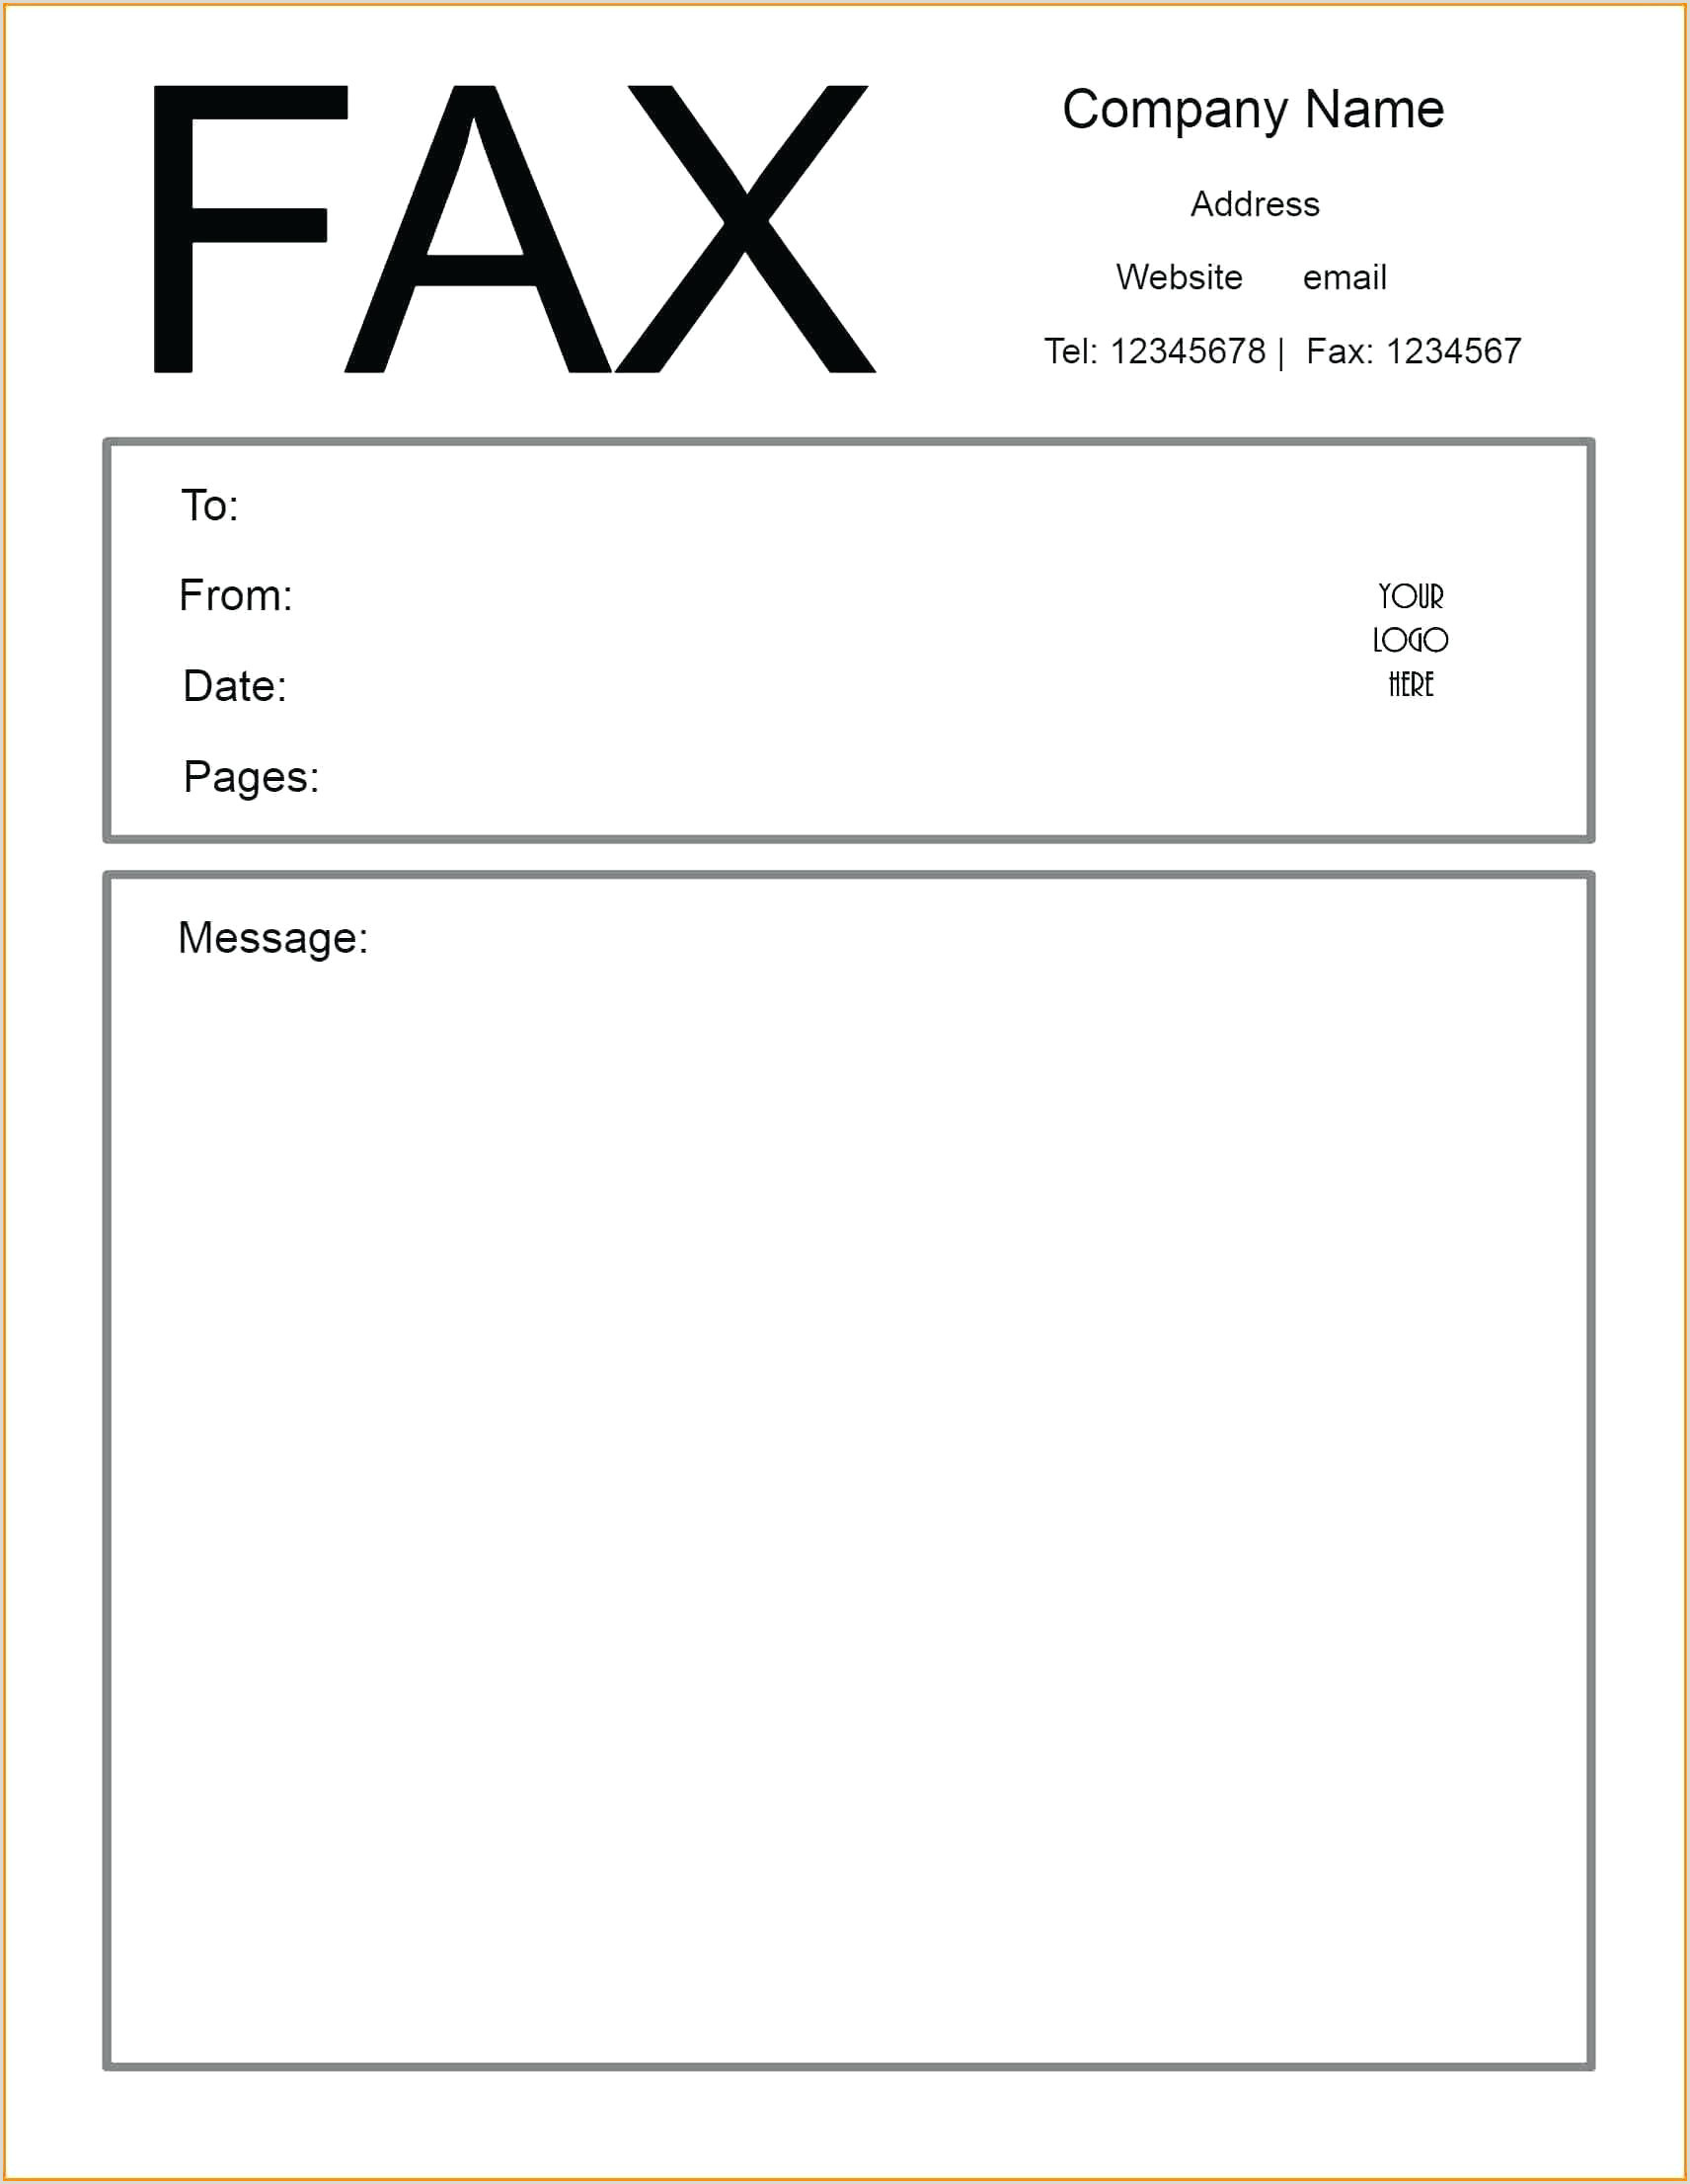 Fax Cover Sheet Apple Coversheet Template – Wovensheet